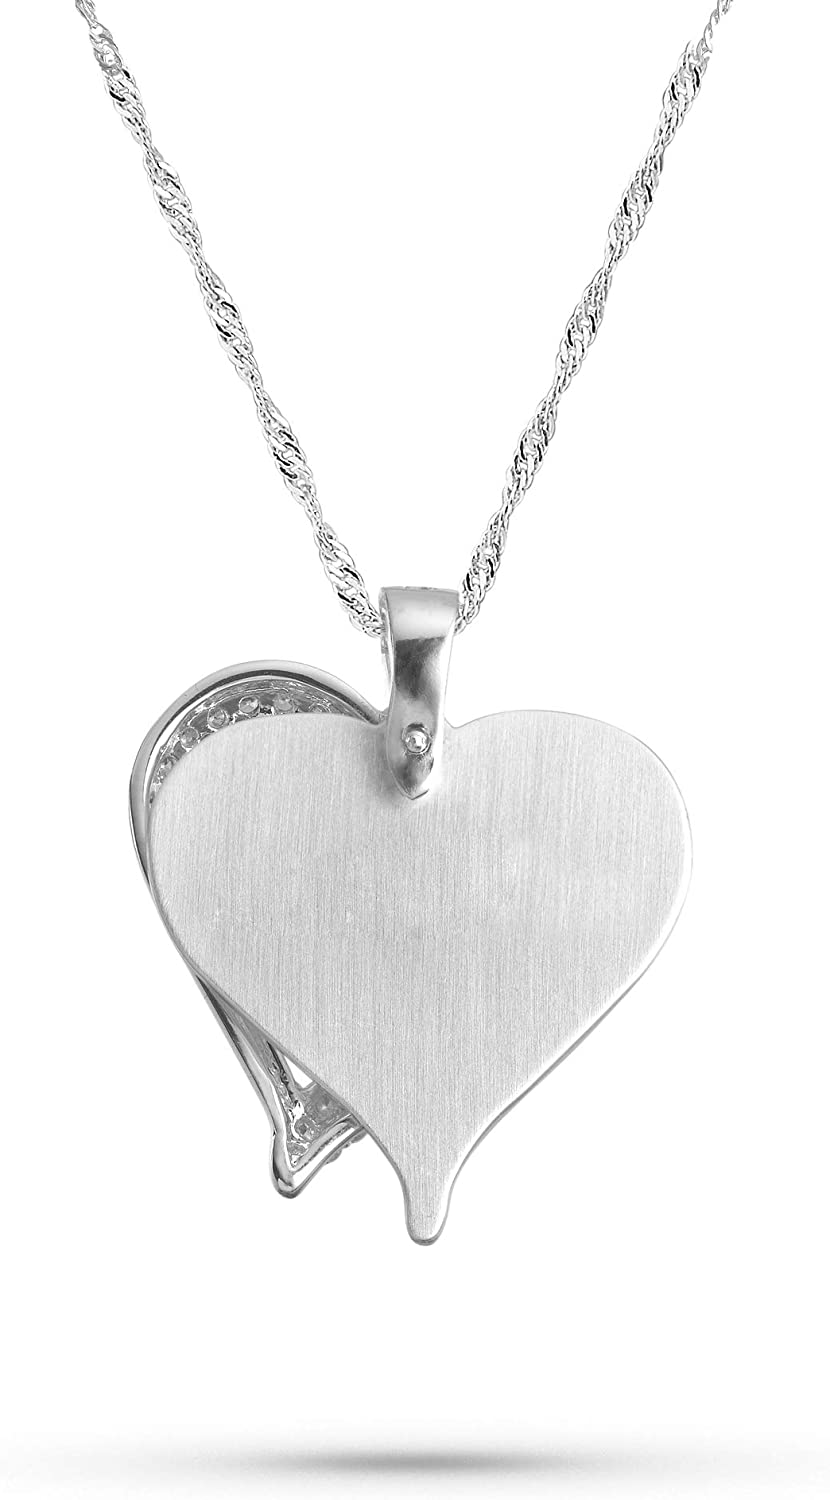 """Things Remembered Personalized Sterling Silver Initial /""""J/"""" Heart Necklace with Engraving Included"""